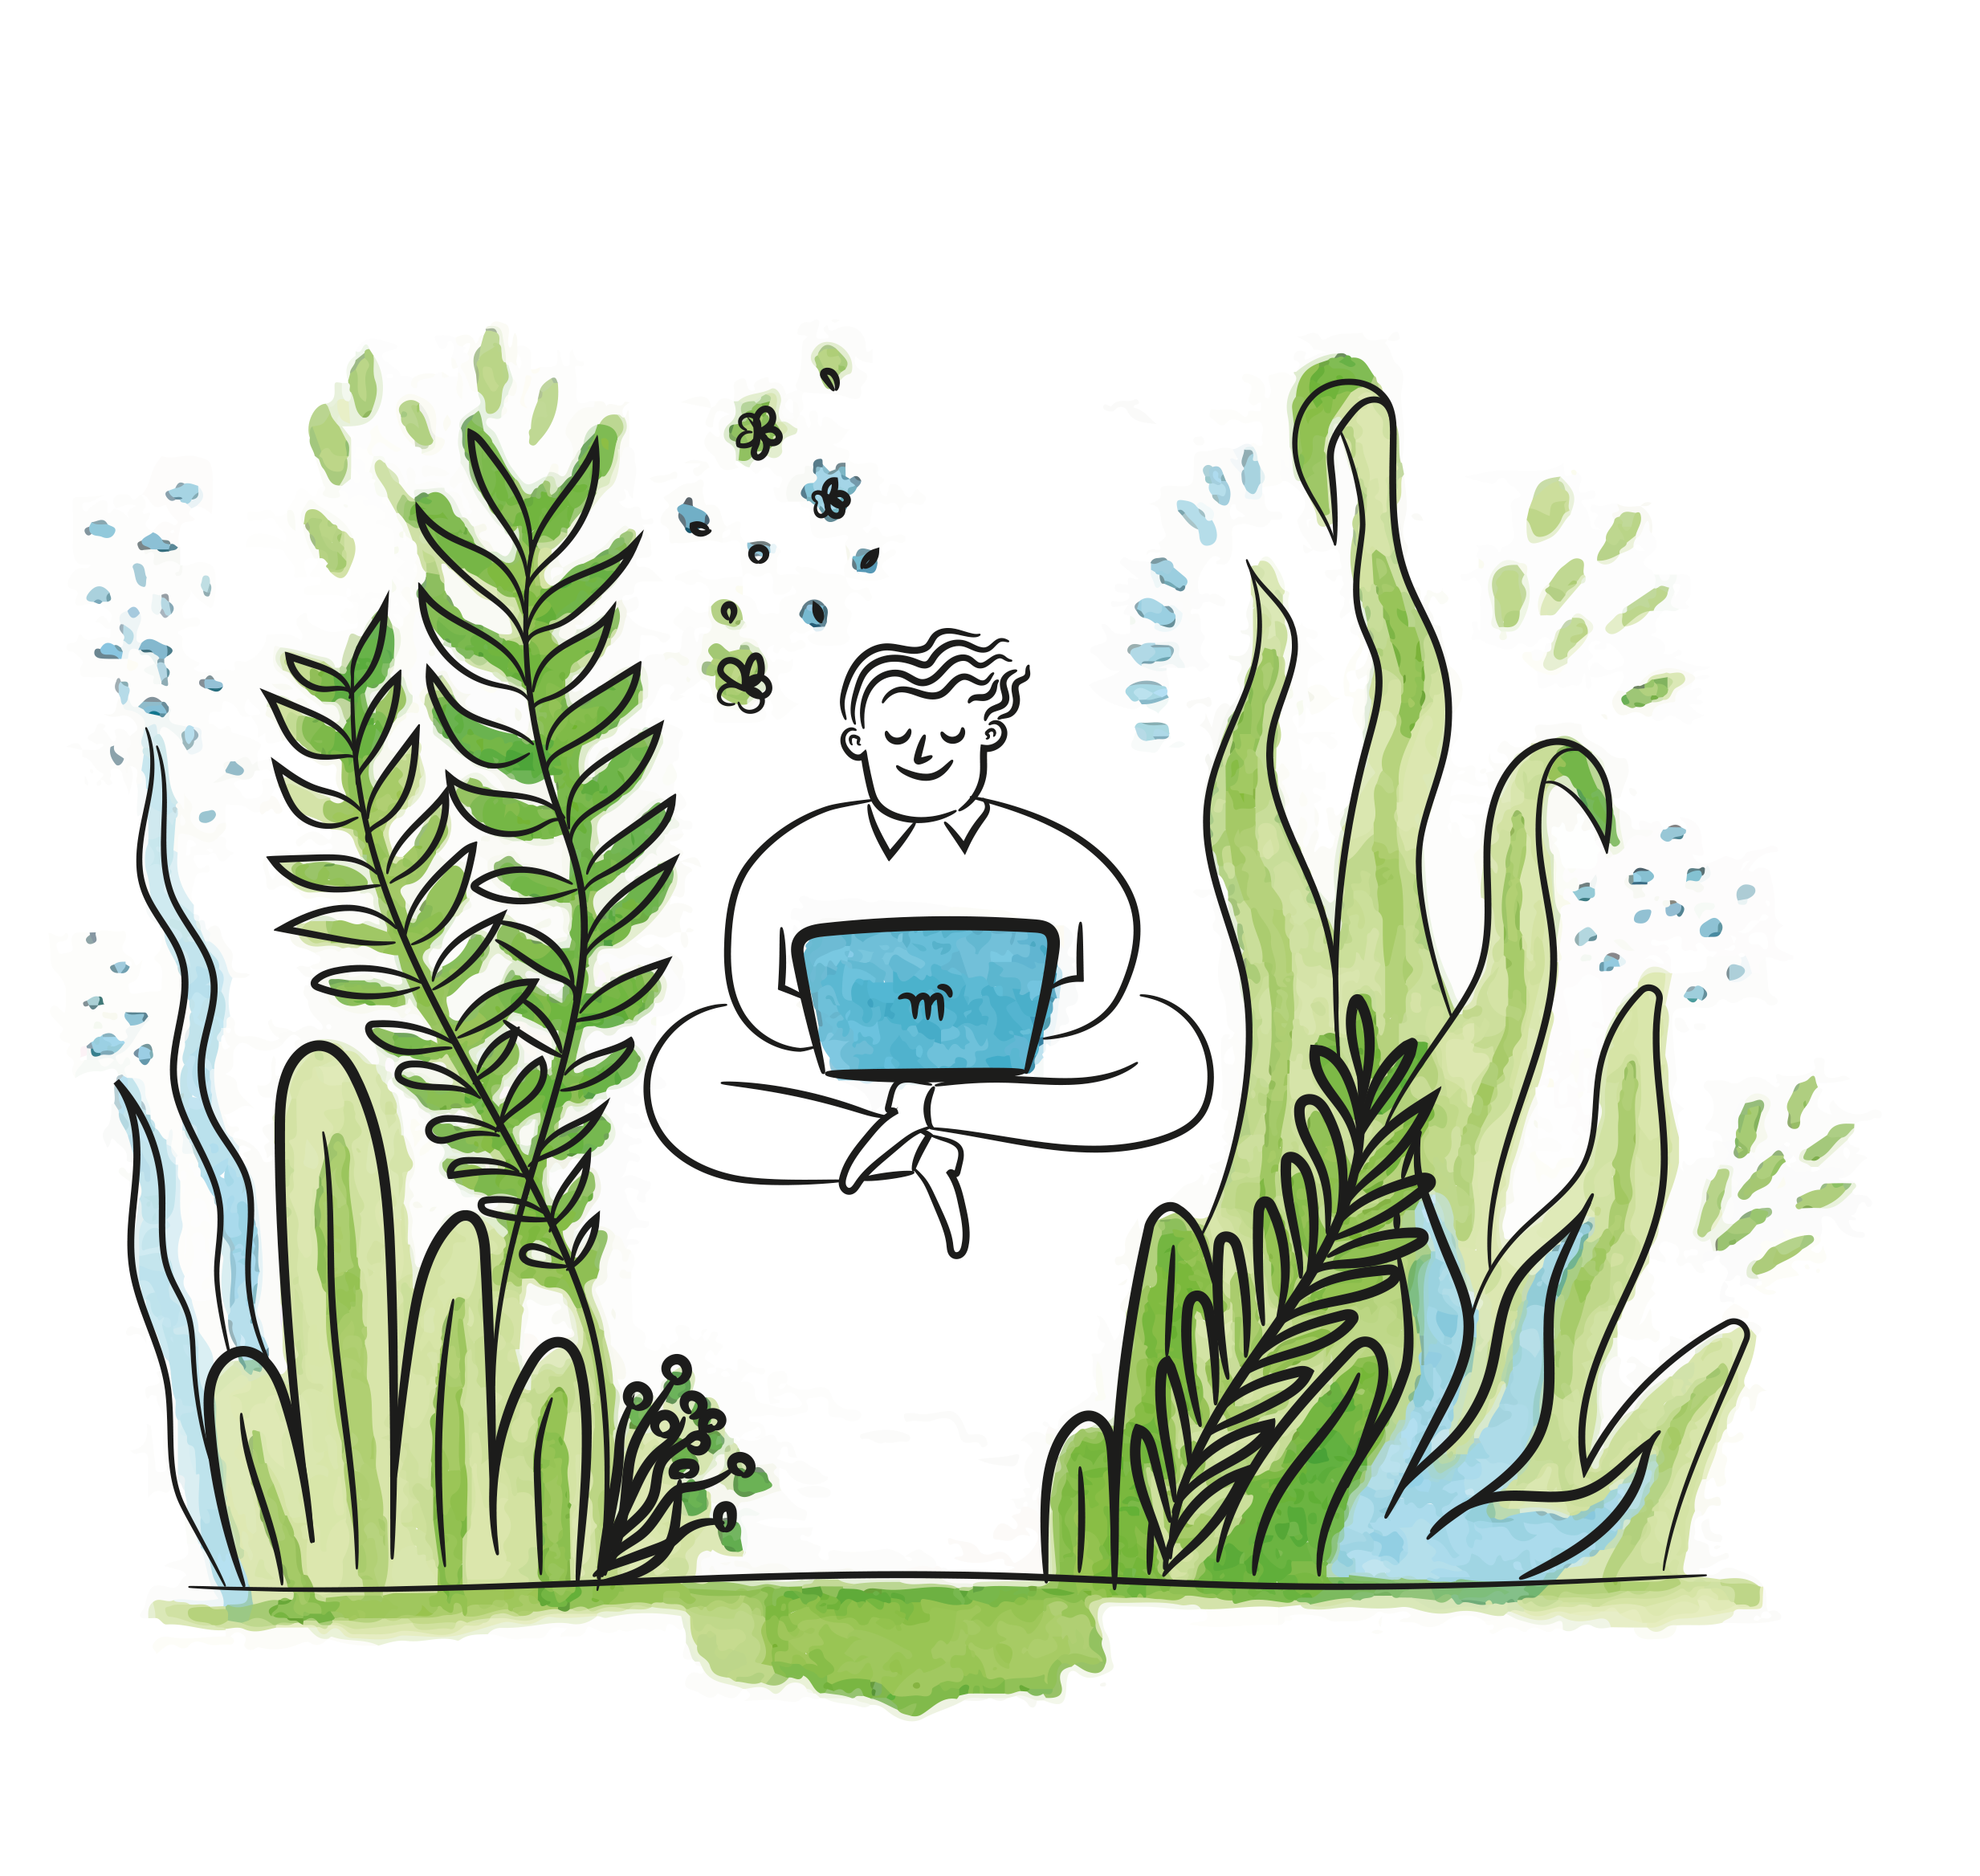 happy person using a computer in nature